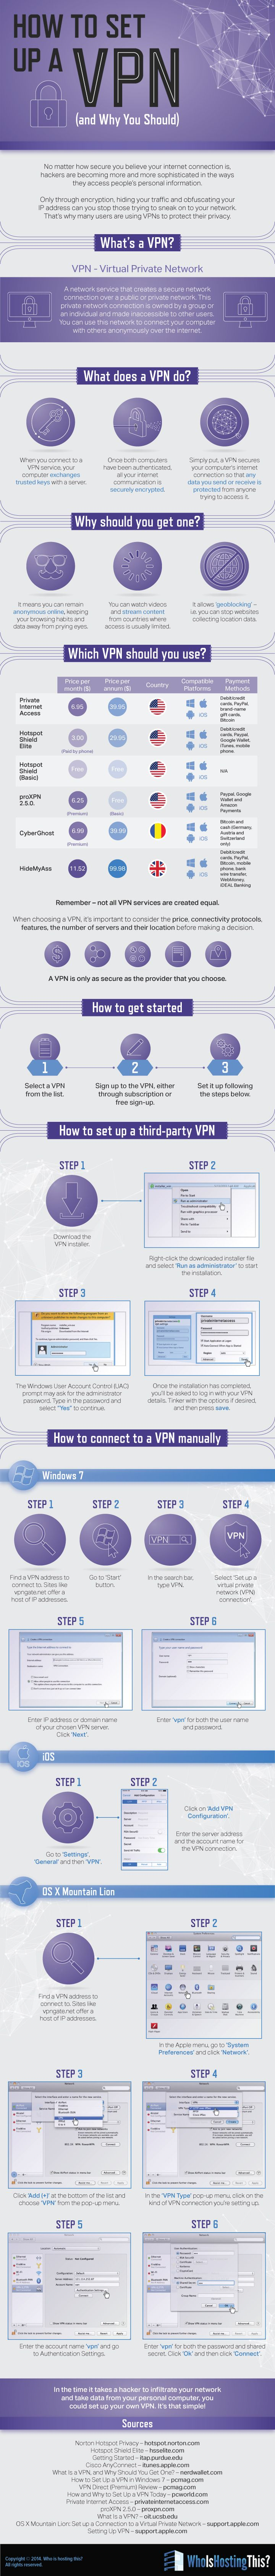 How to Set up a VPN (And Why You Should)